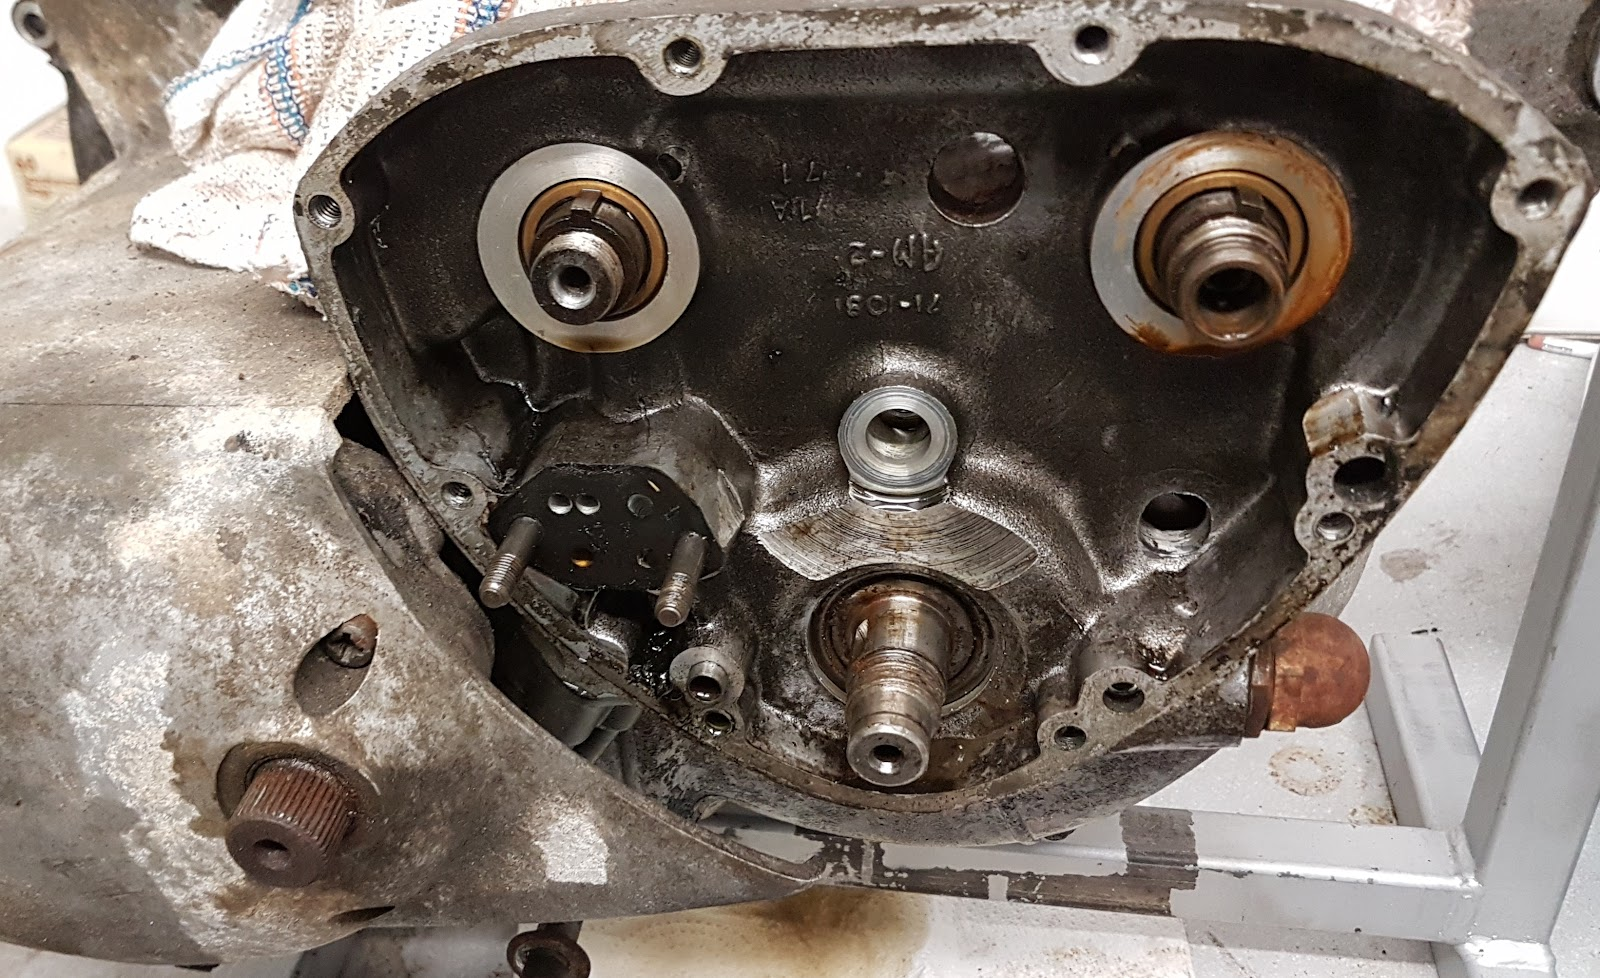 Crankshaft pinion removed from the Triumph Bonneville.